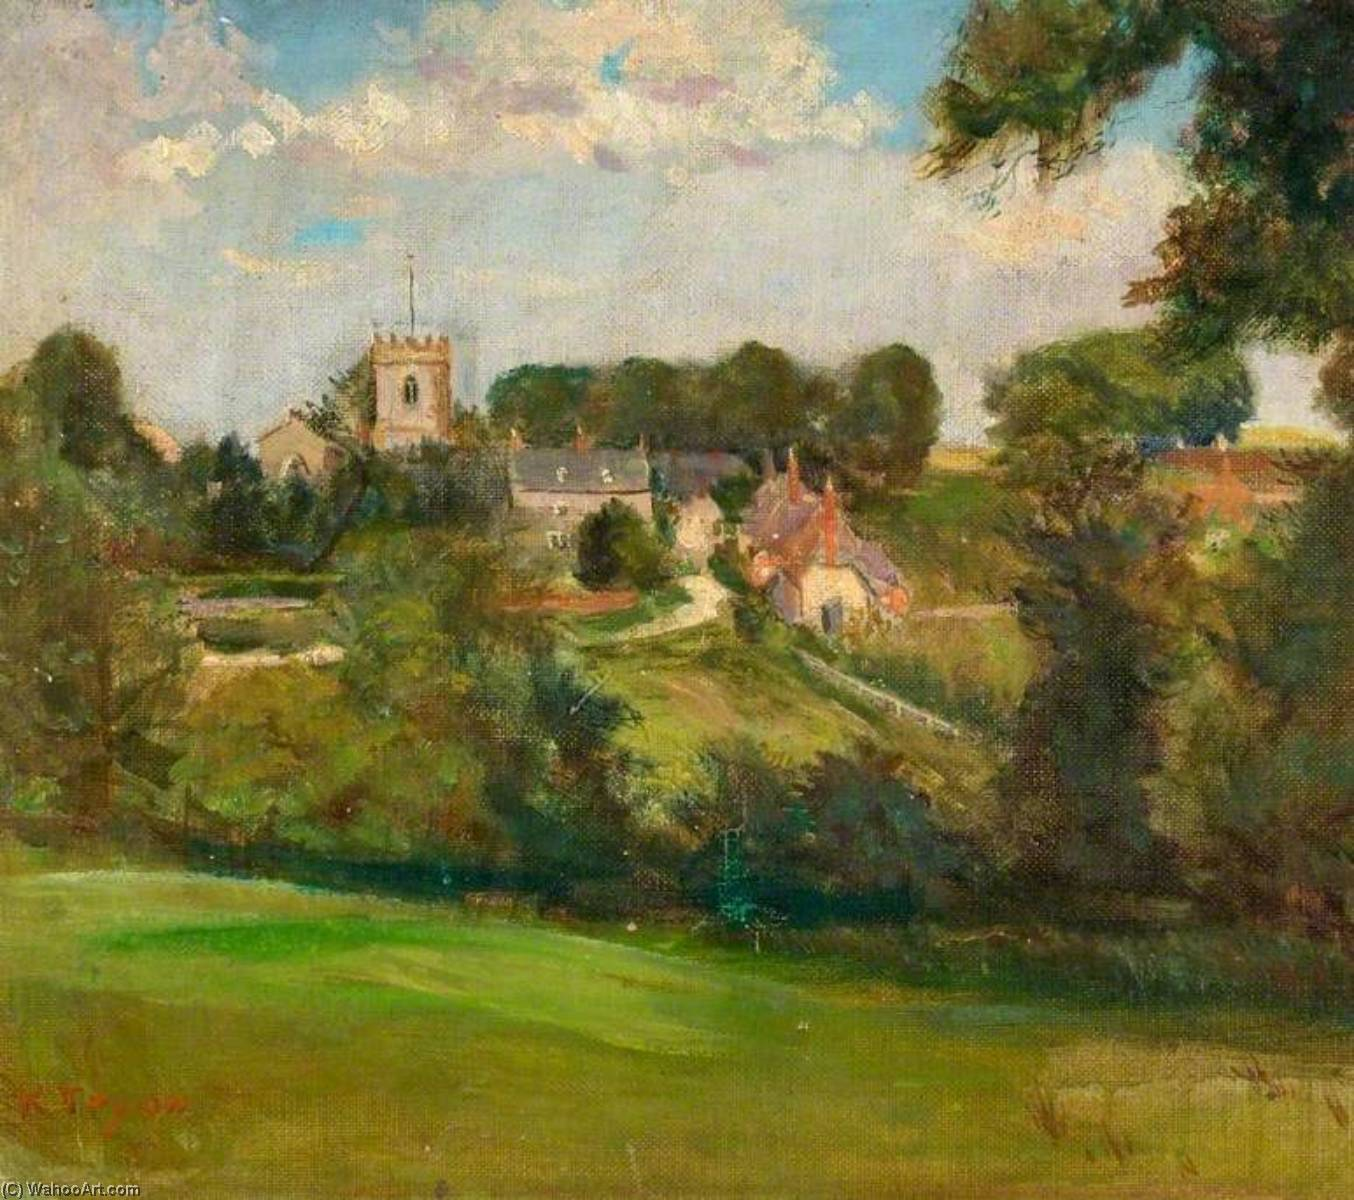 Chiseldon Church, Wiltshire, 1910 by Kate Allen Tryon | Museum Art Reproductions Kate Allen Tryon | WahooArt.com